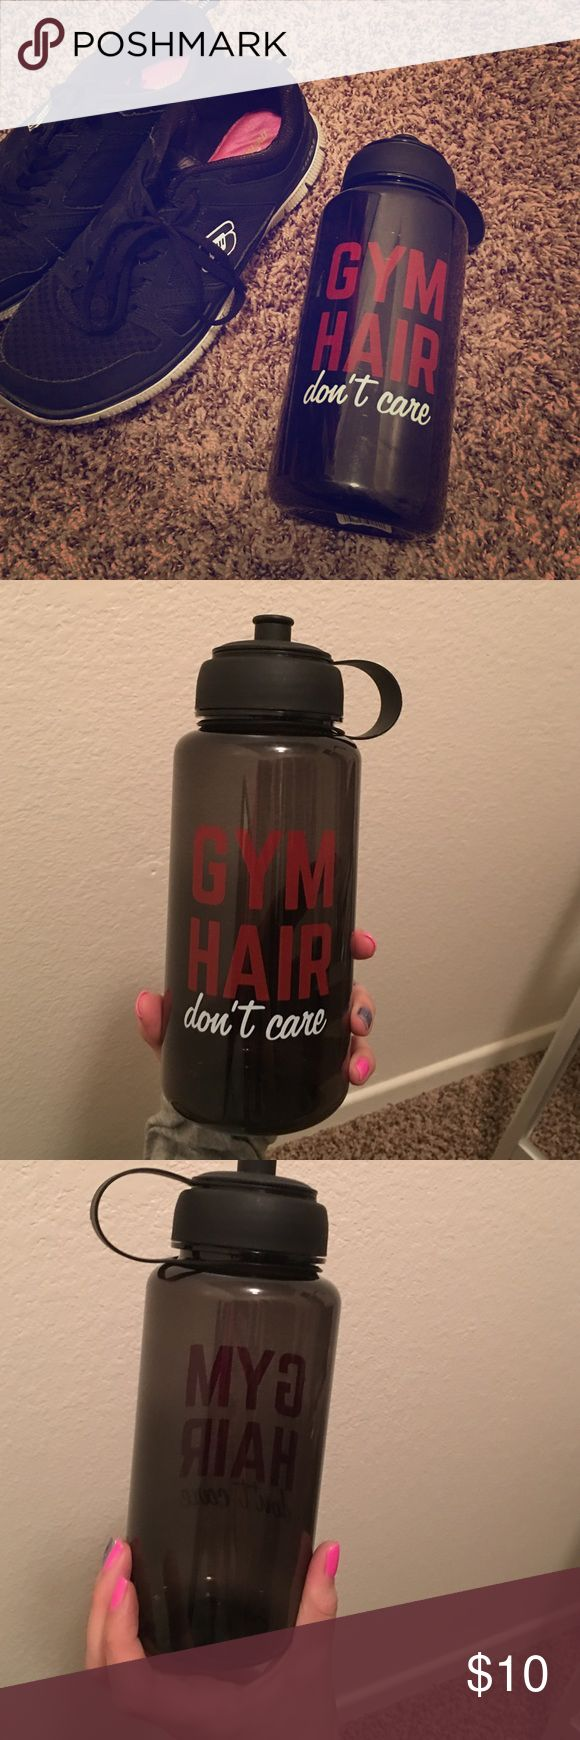 """""""Gym hair don't care"""" water bottle Super cute """"Gym hair don't care"""" water bottle. Never used  only thing is the tag is ripped off. Accessories"""